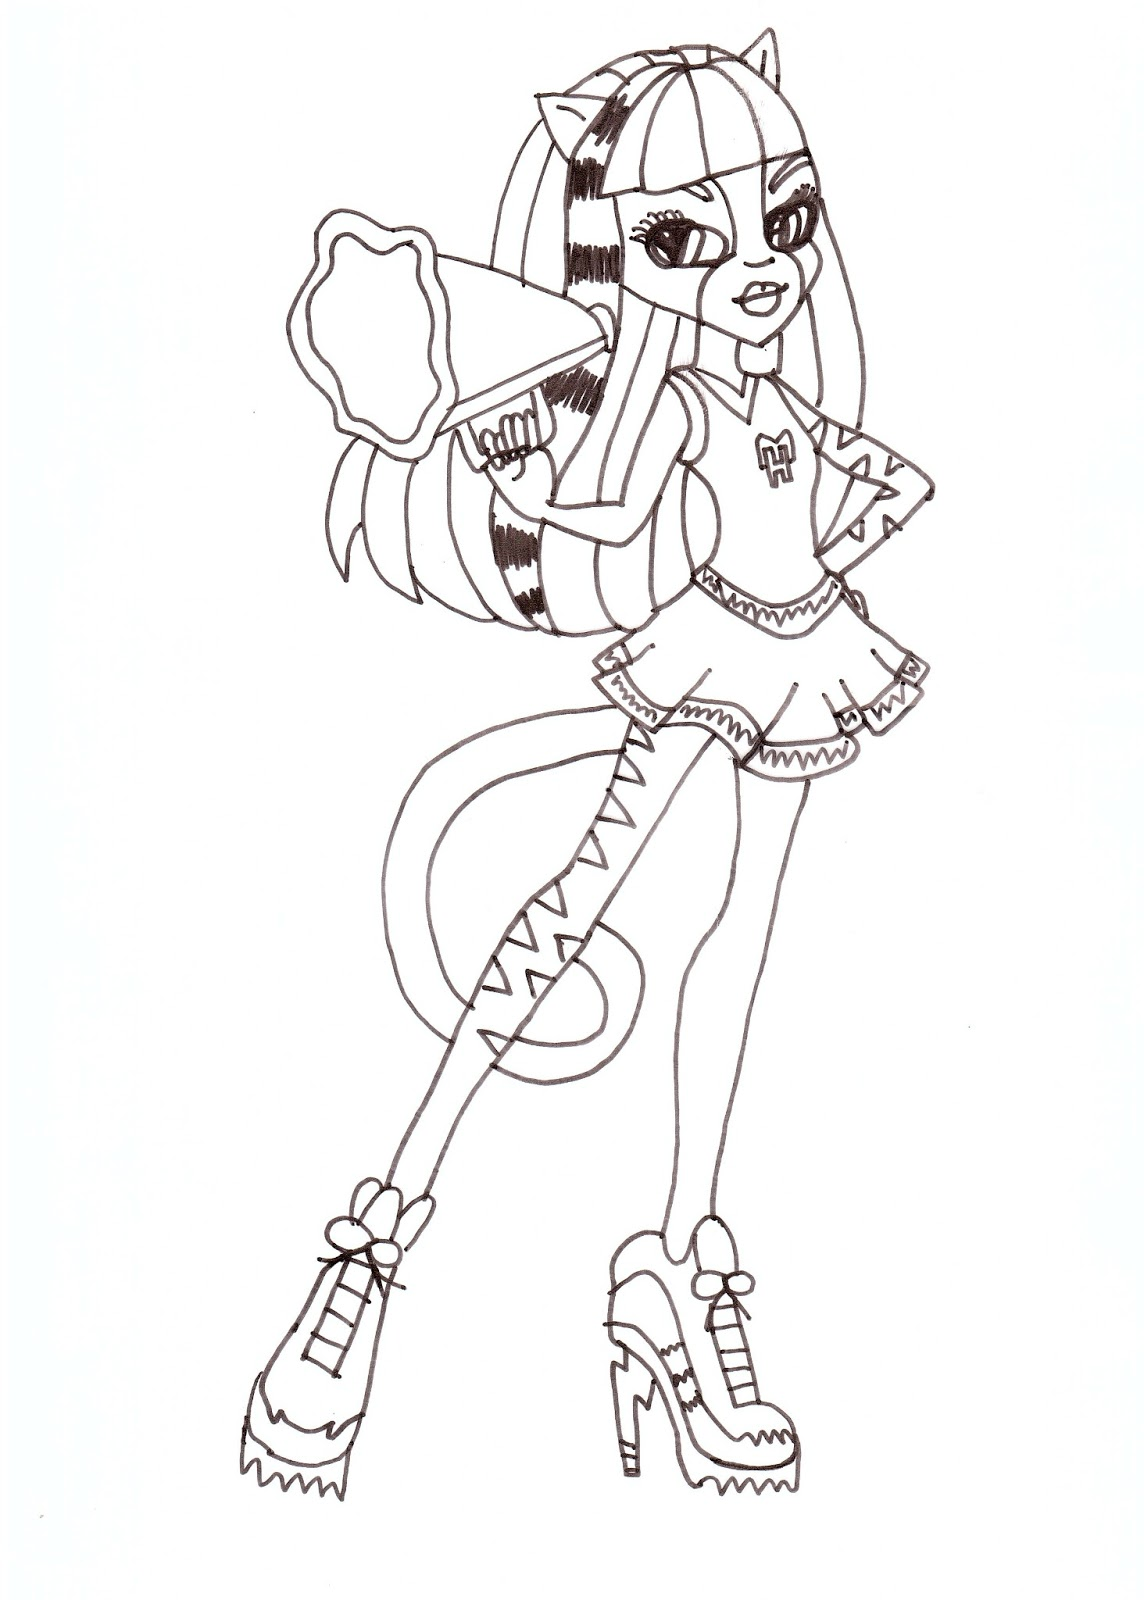 Free Printable Monster High Coloring Pages: Purrsephone